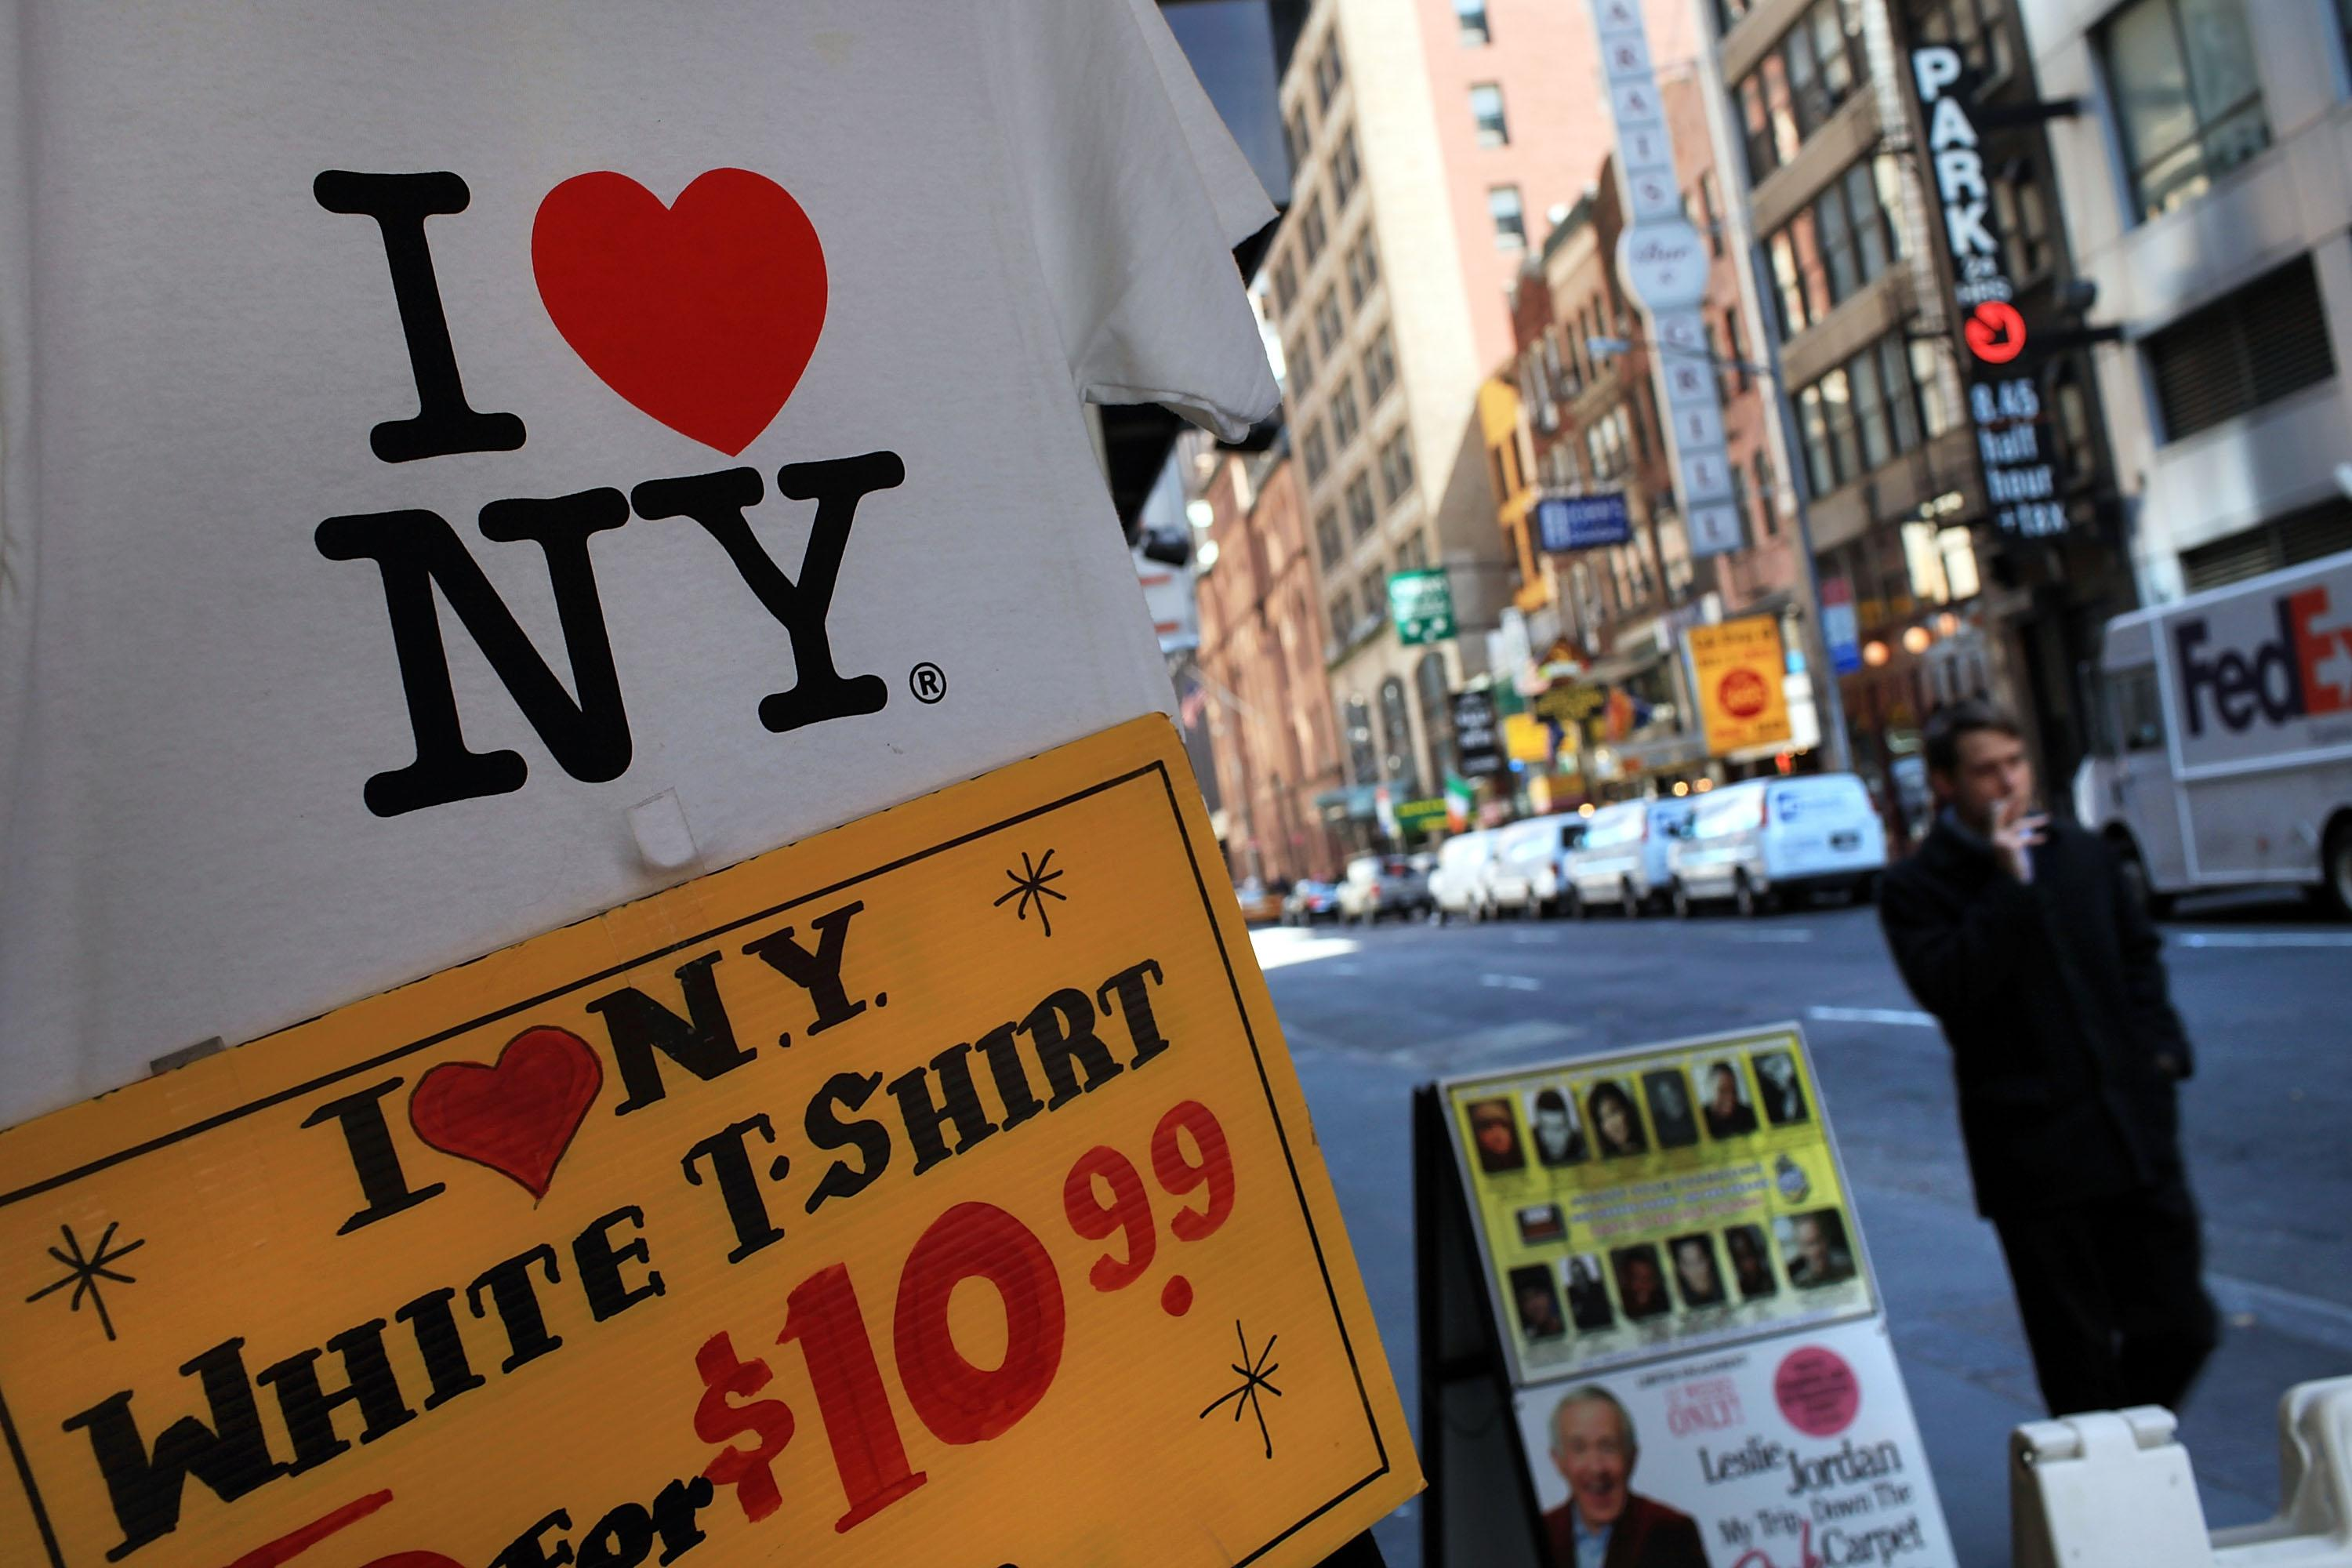 Some call for 'I Love NY' billboards to be taken down